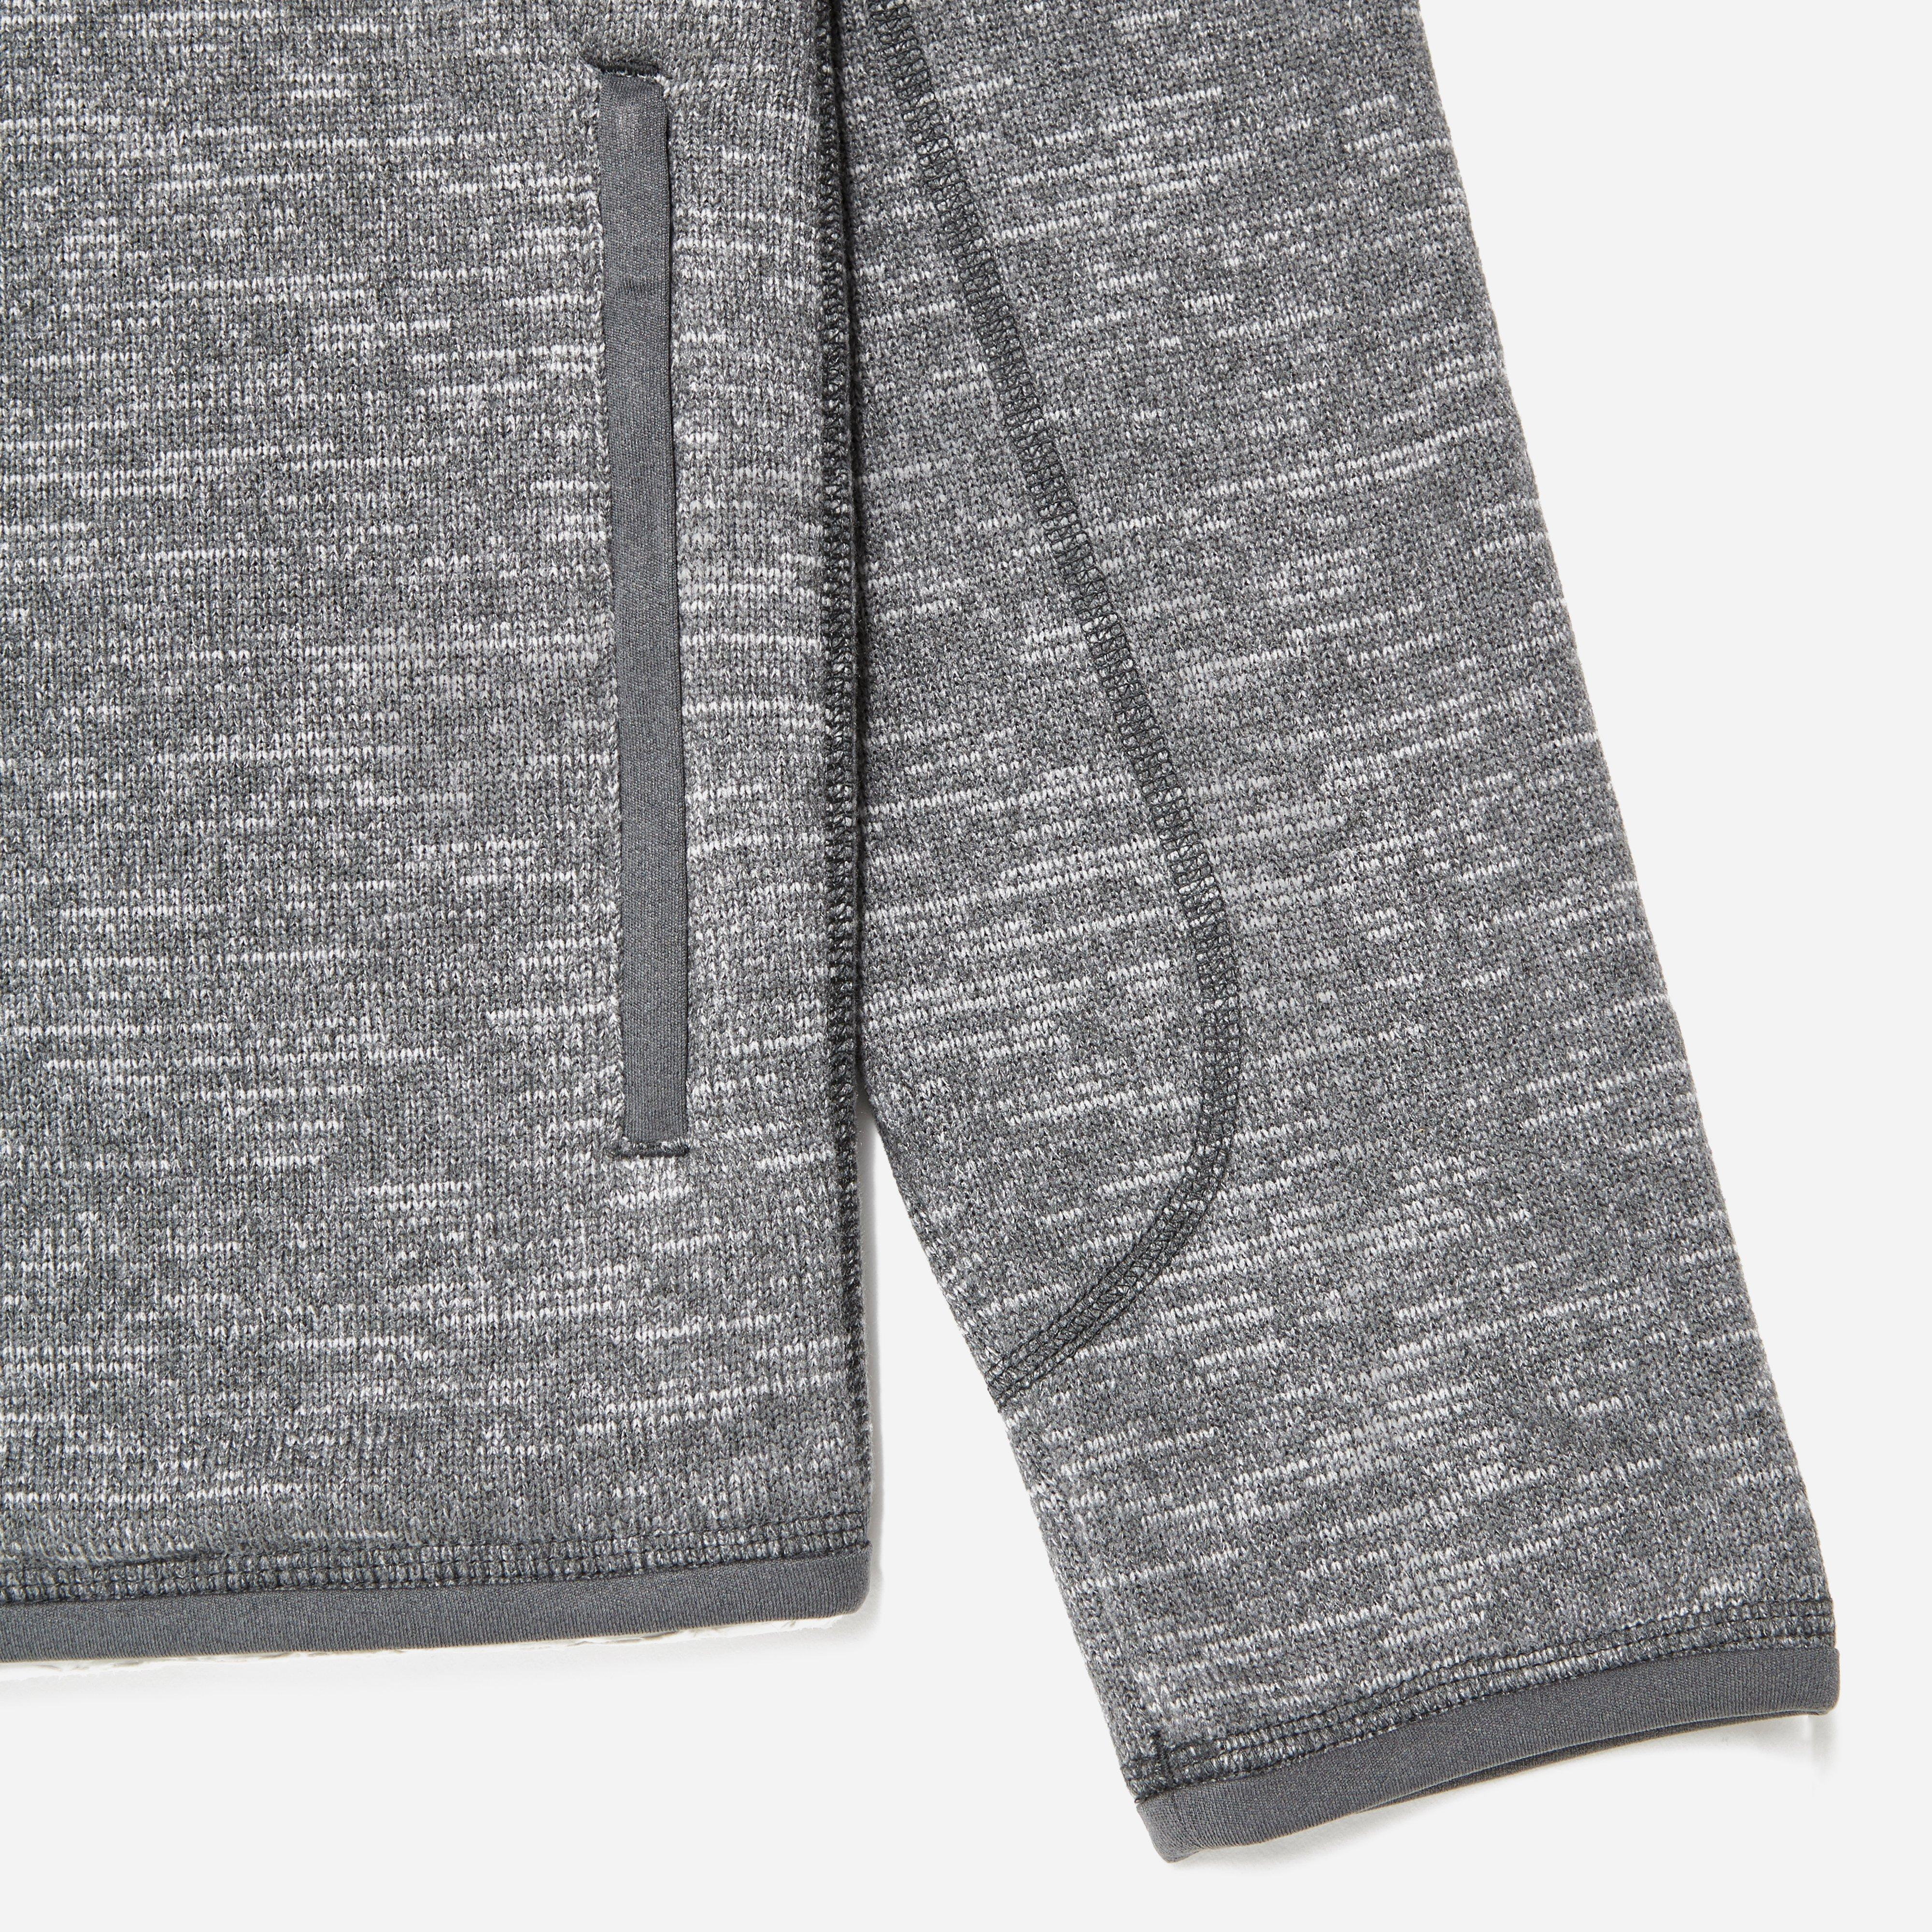 Patagonia Synthetic Better Sweater Jacket in Grey (Grey) for Men - Save 49%